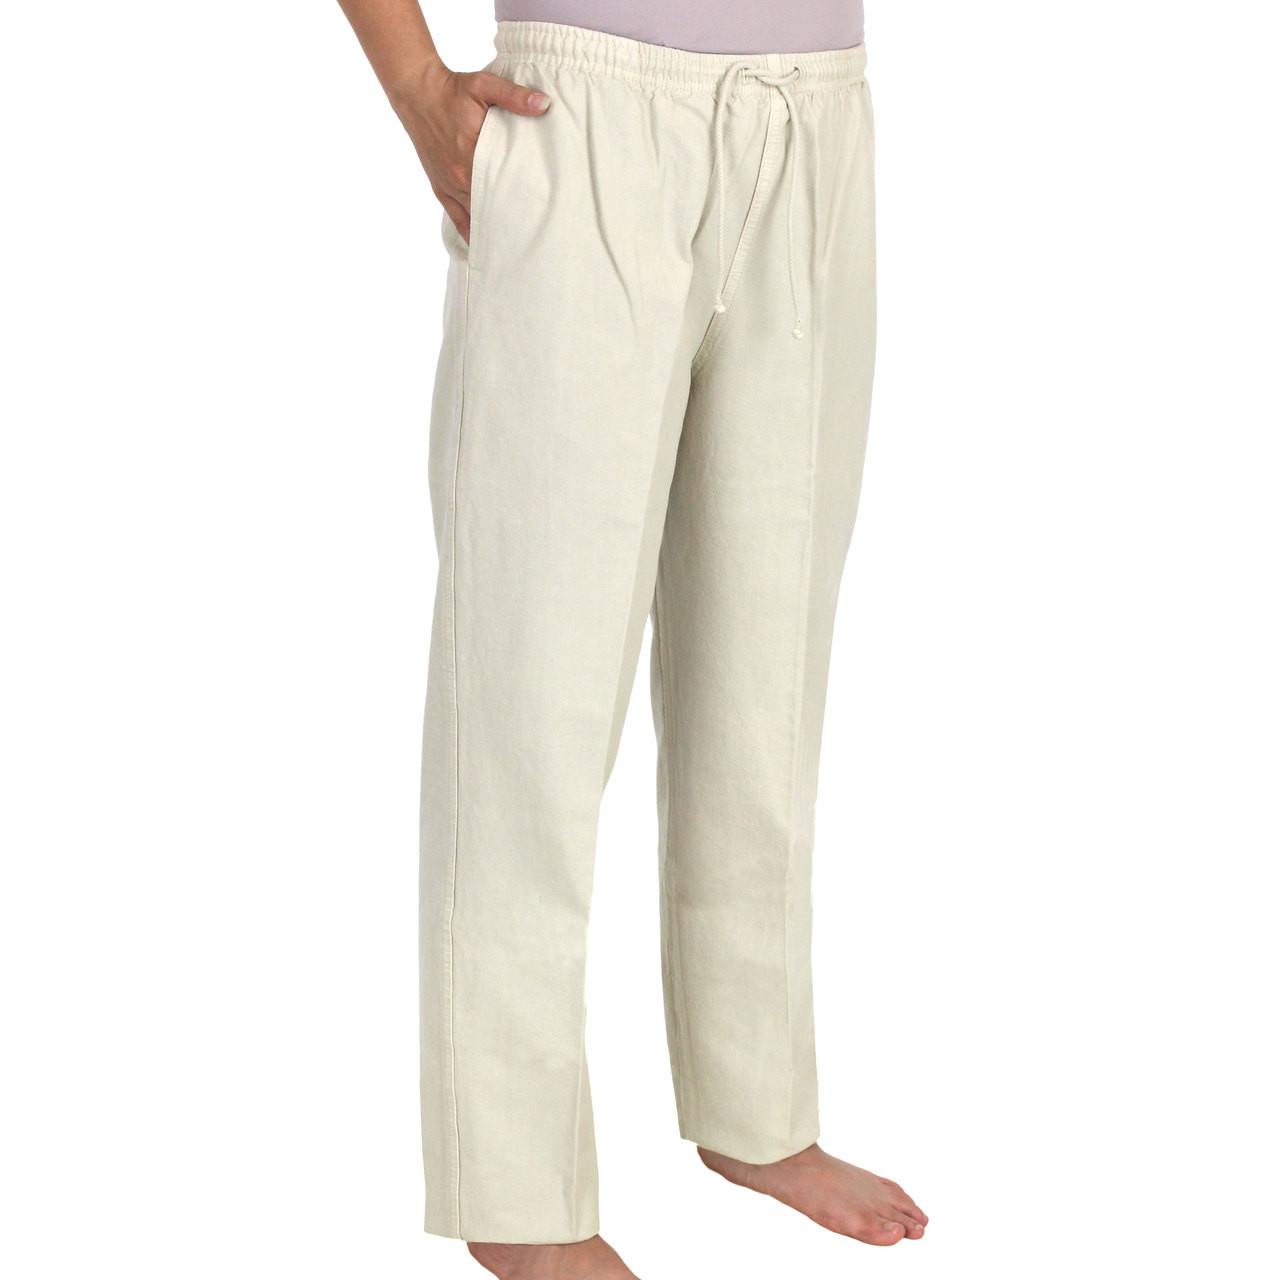 82d370c8f9b Loading zoom. Crinkle Cotton Ankle Pant Flax